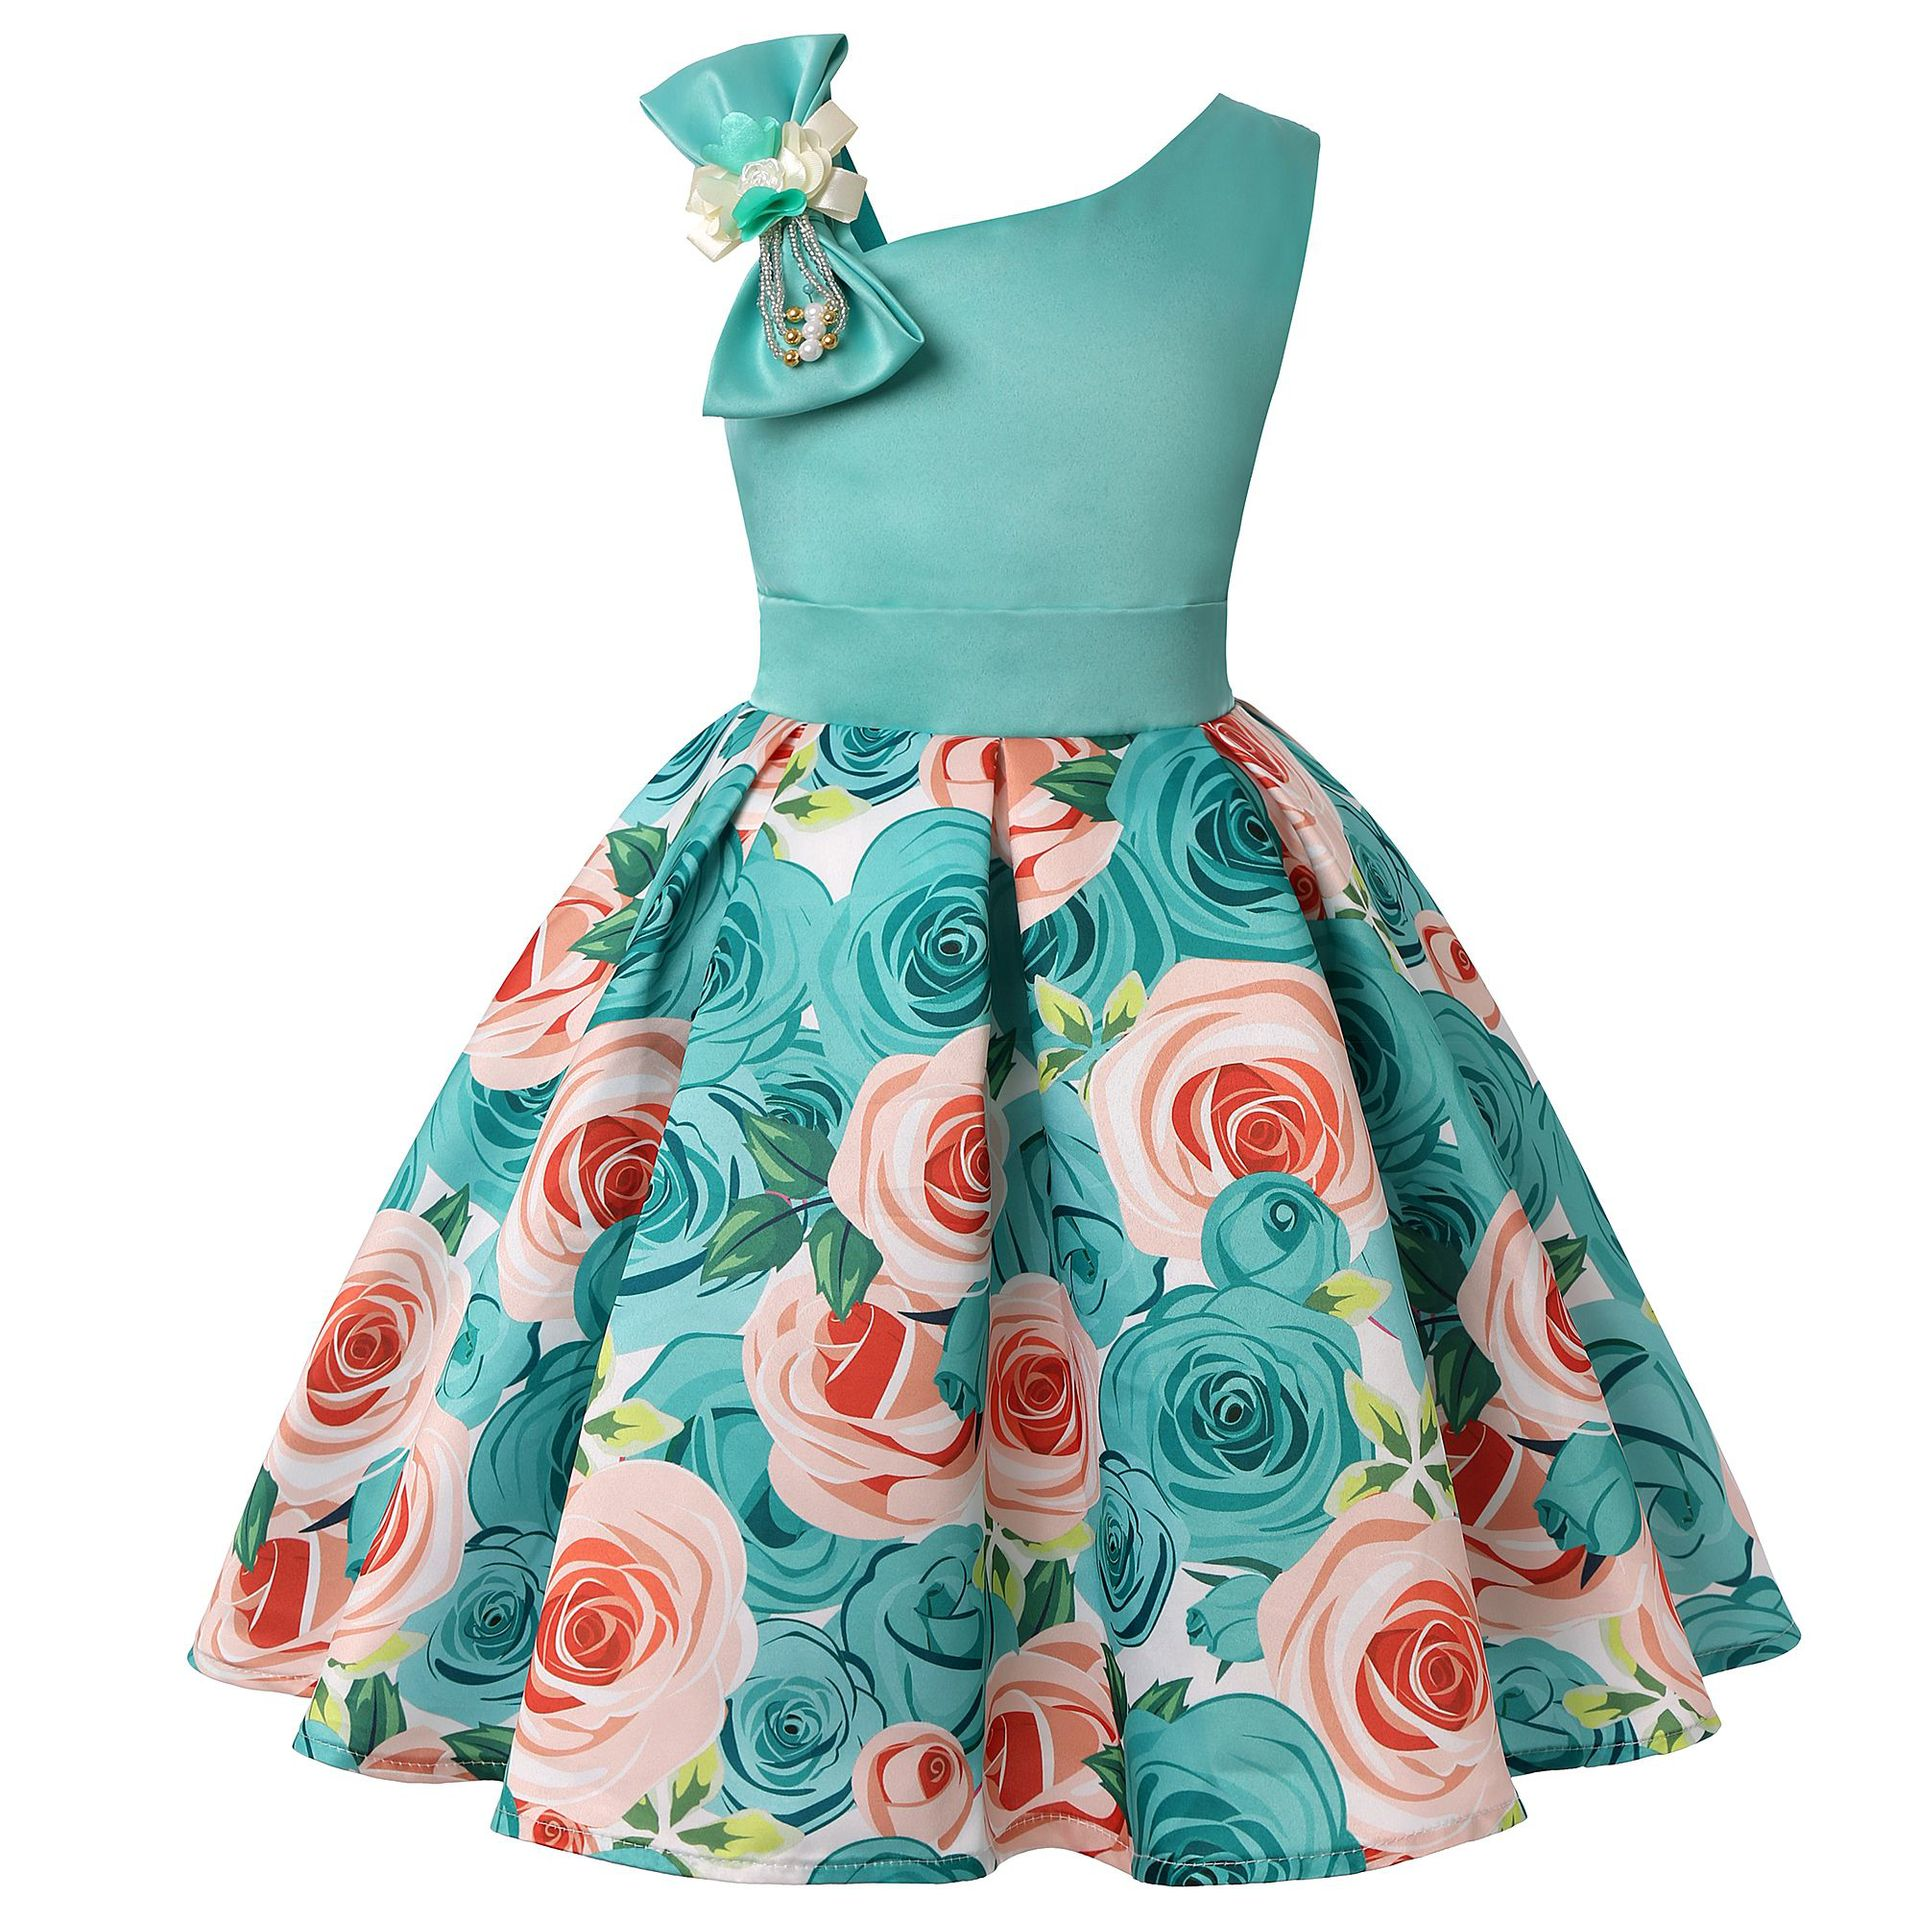 Girls Dress For Kids Clothes Flower One-shoulder Pageant Birthday Wedding Party Princess Children Dress 3 4 5 6 7 8 9 years 5